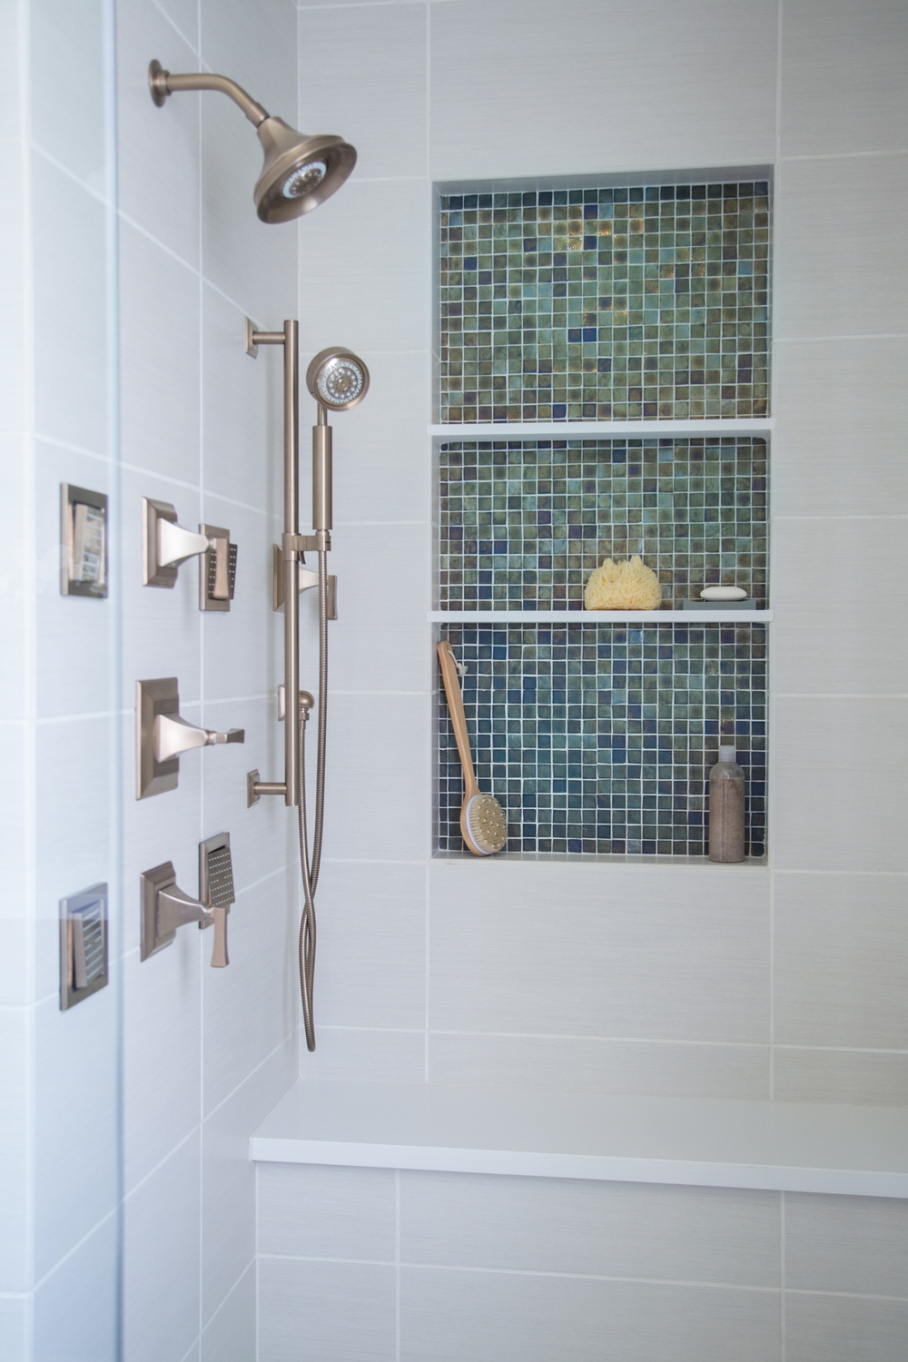 Bathroom remodel; shower; tile; fixture | Interior designer: Carla Aston / Photographer: Tori Aston